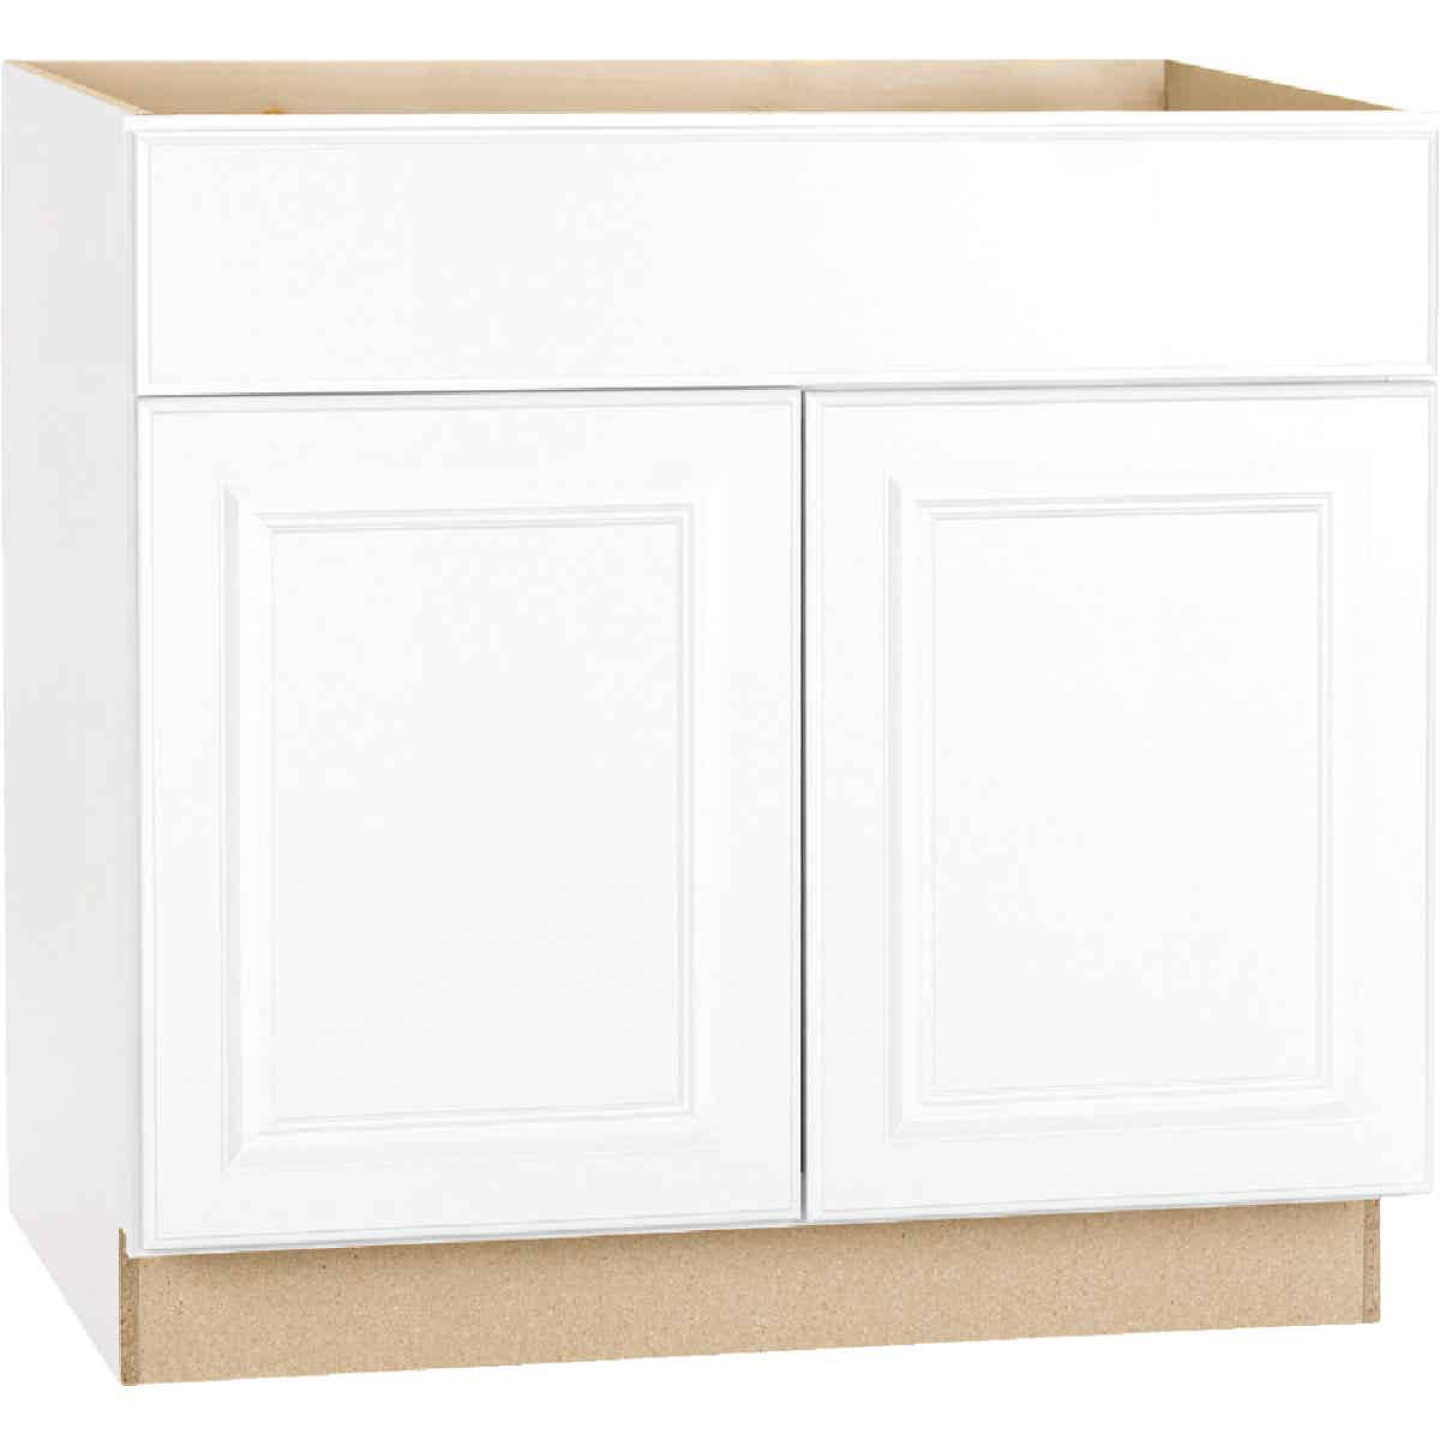 Continental Cabinets Hamilton 36 In. W x 34-1/2 In. H x 24 In. D Satin White Maple Base Kitchen Cabinet Image 3